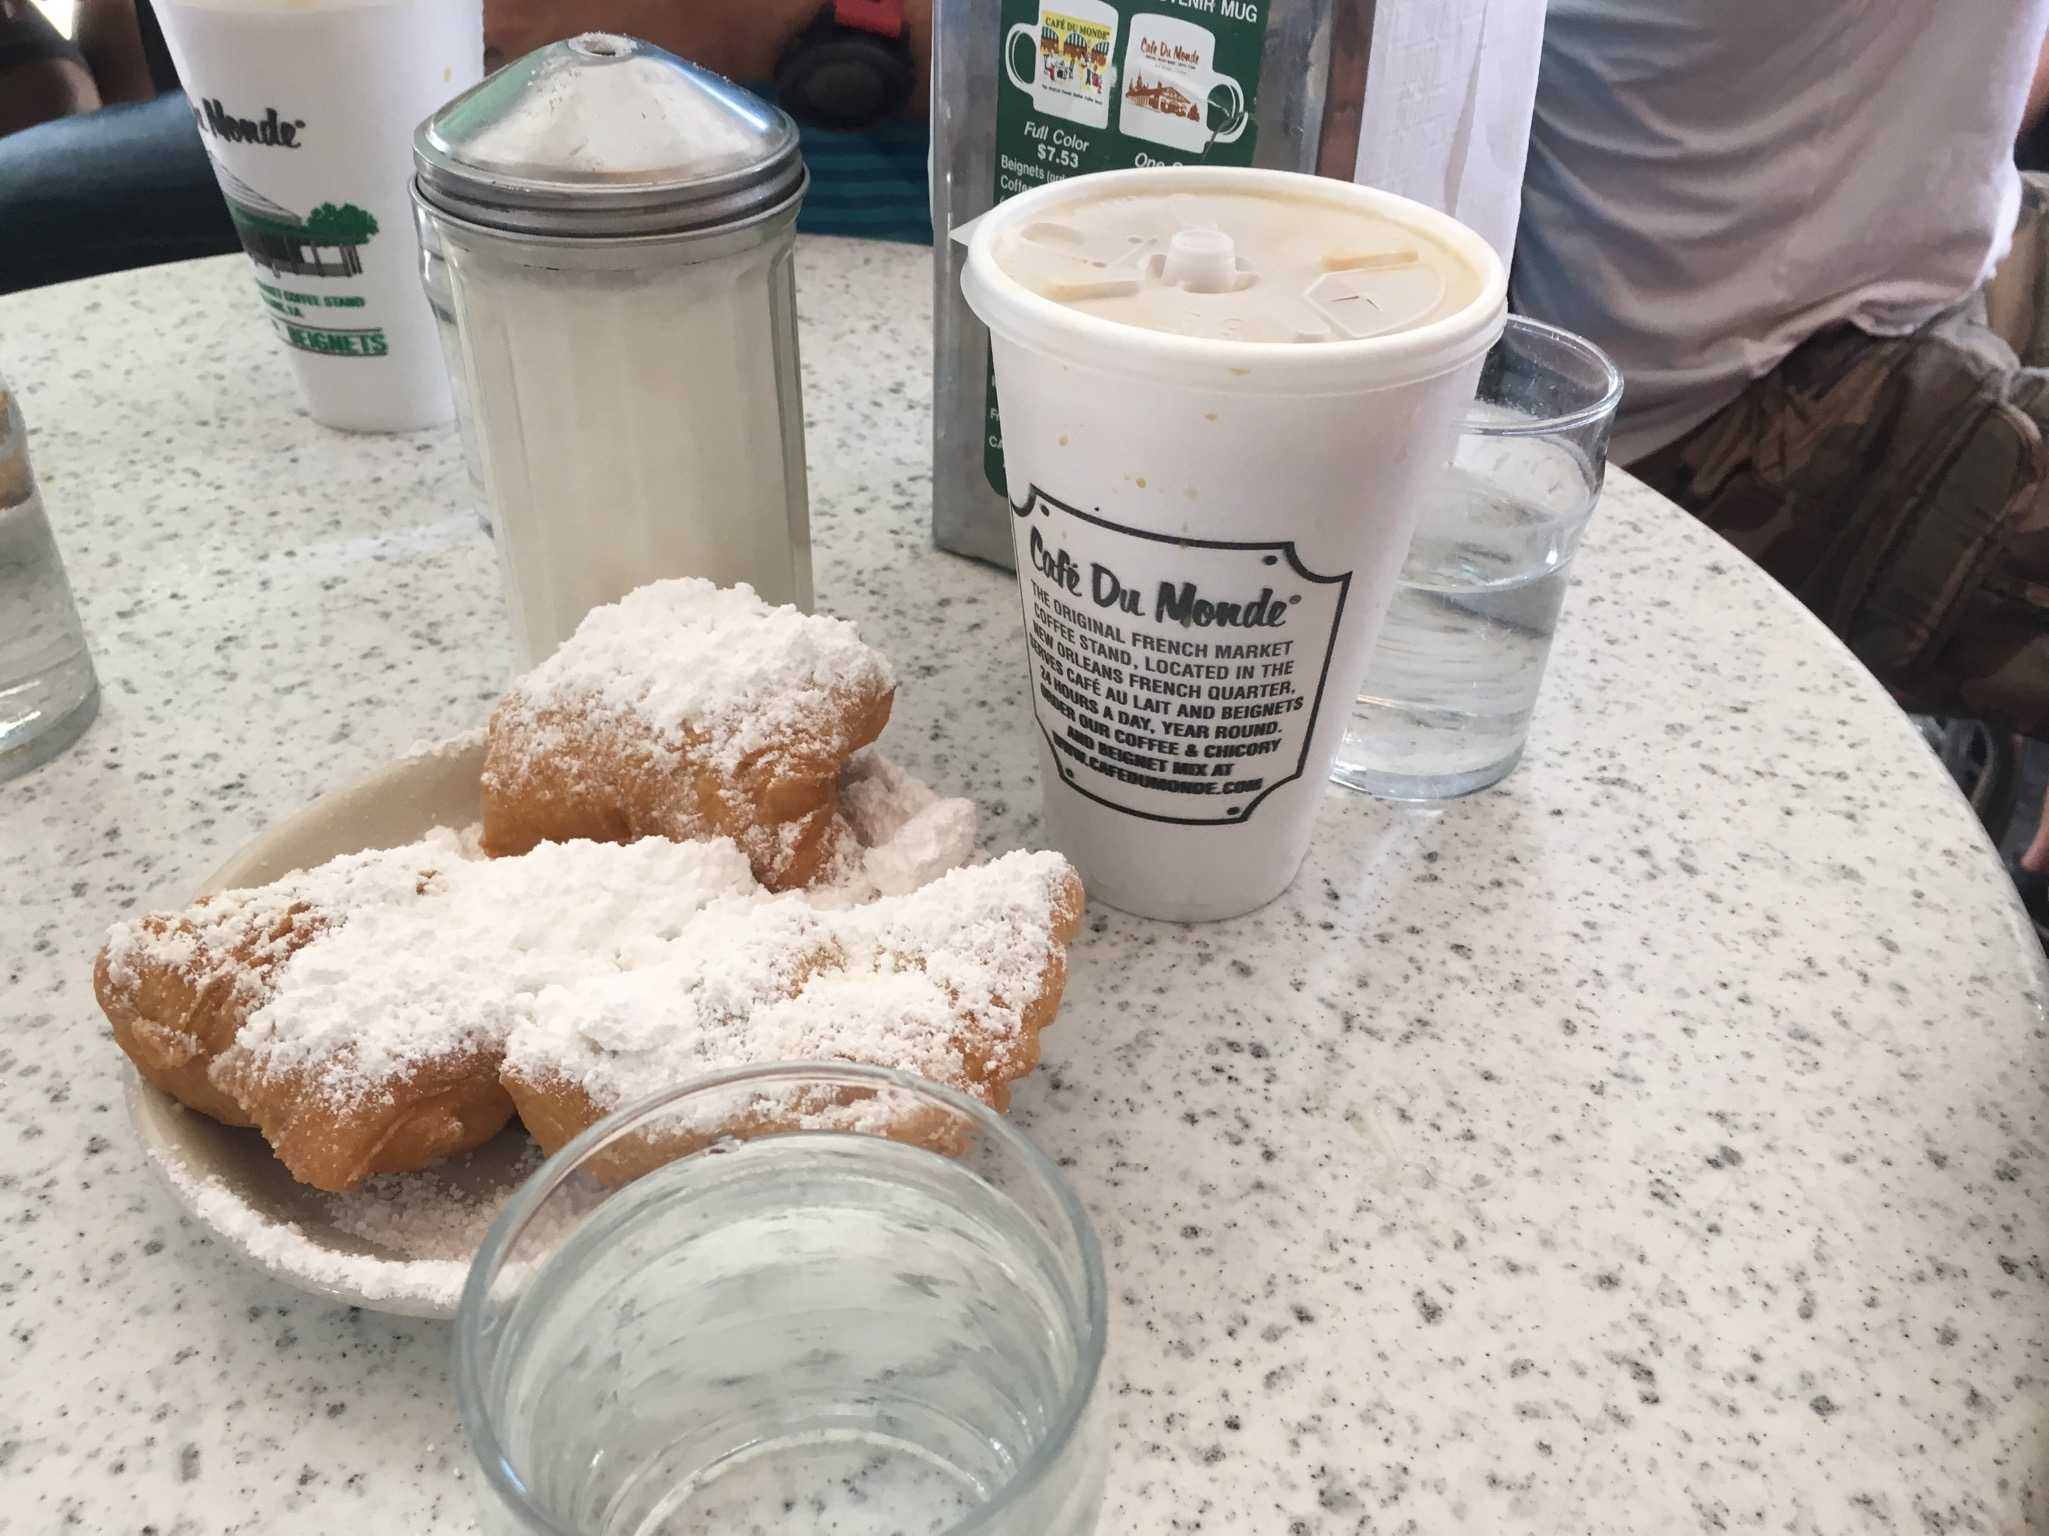 BEIGNETS AND COFFEE: Try Cafe au Lait with the beignets at Cafe du Monde — that's a delicious pair!